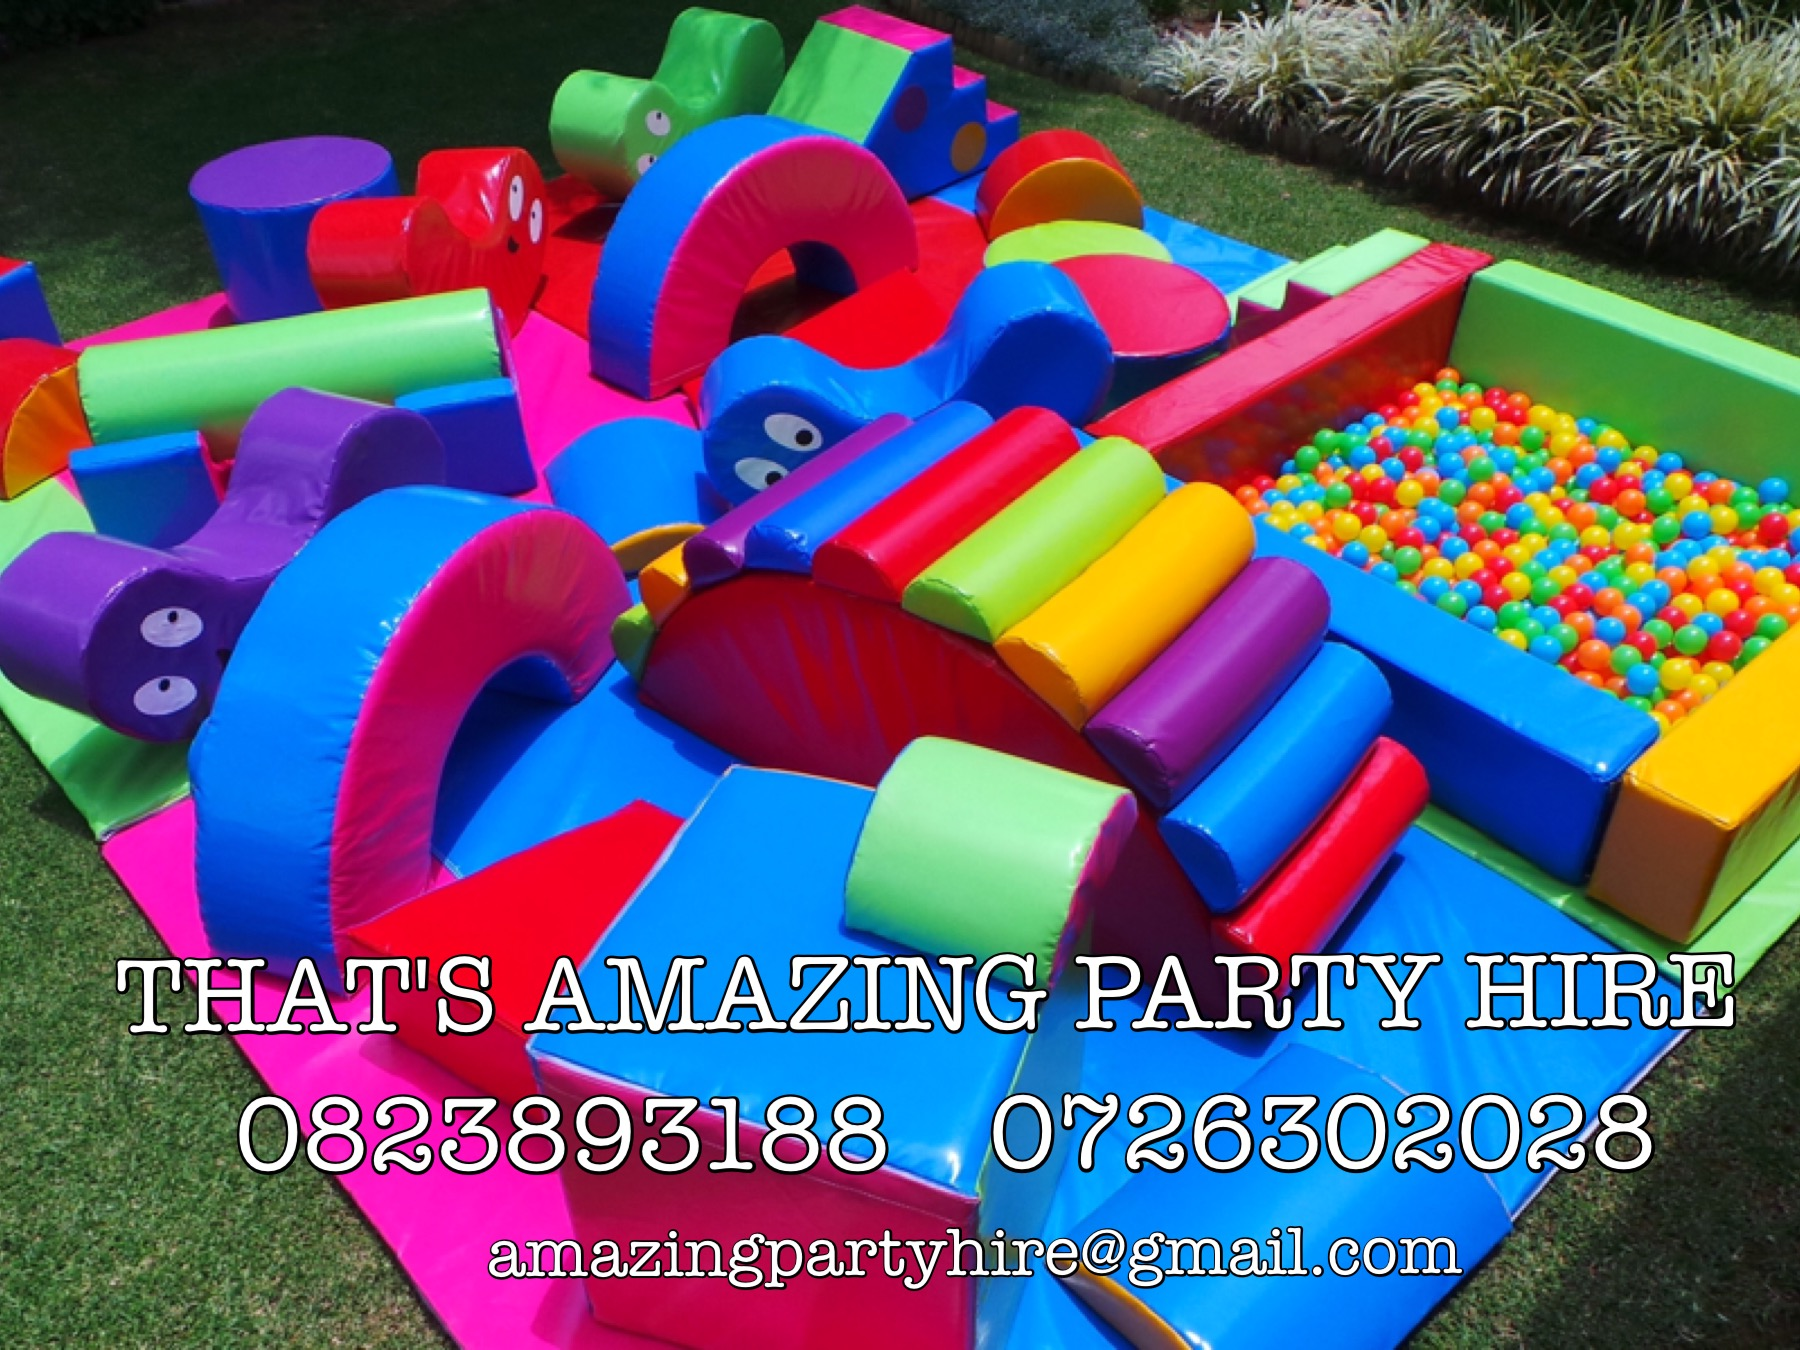 Thats Amazing Party Hire